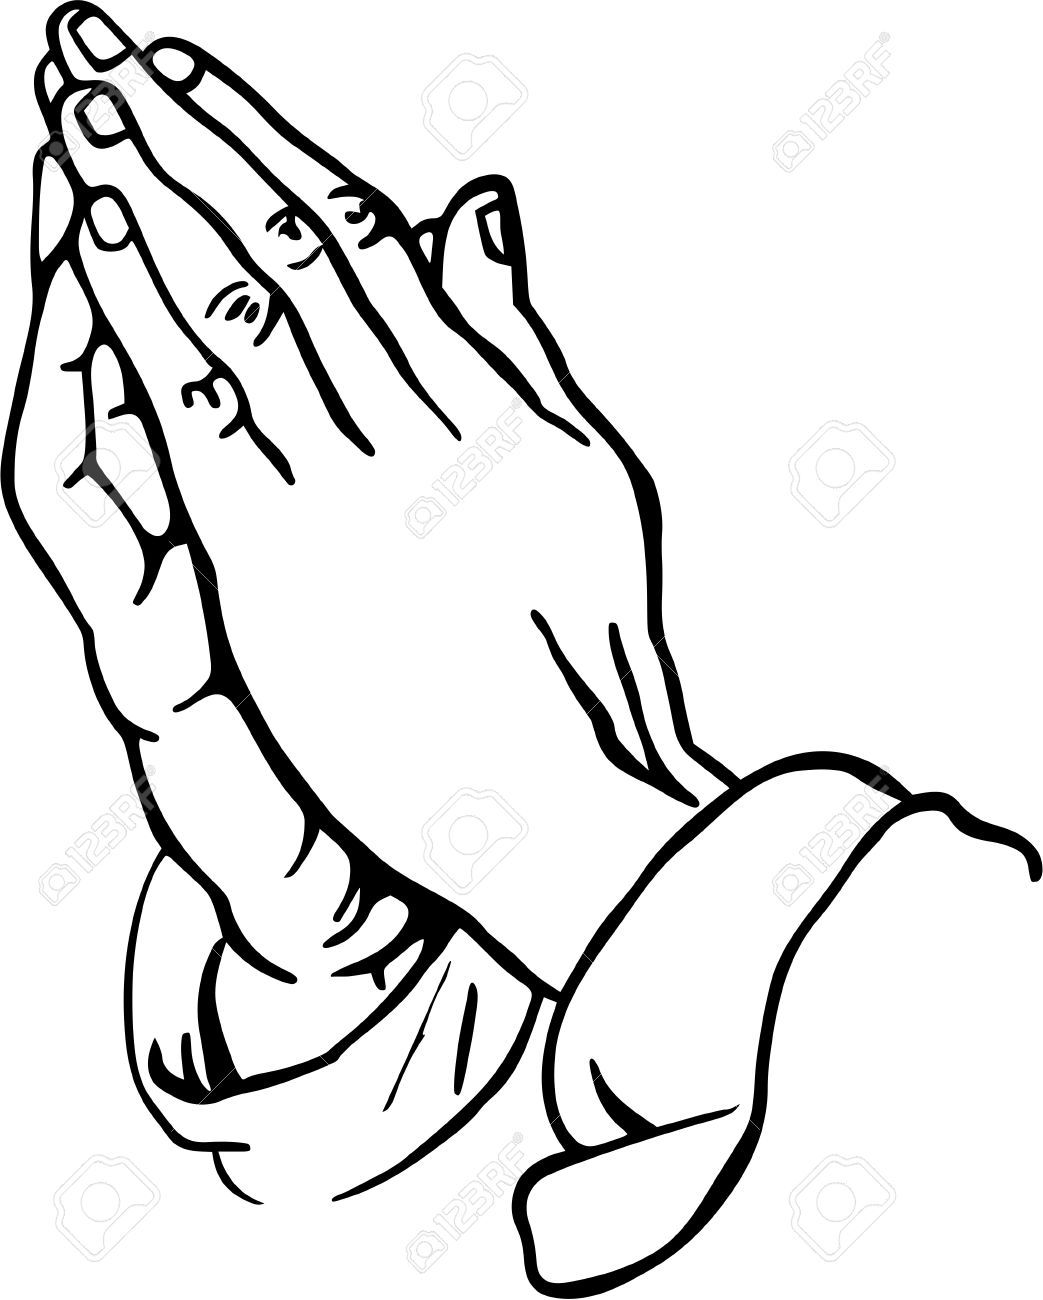 praying hands clipart stock photo picture and royalty free image rh pinterest com clip art praying hands with rosary clip art praying hands black and white